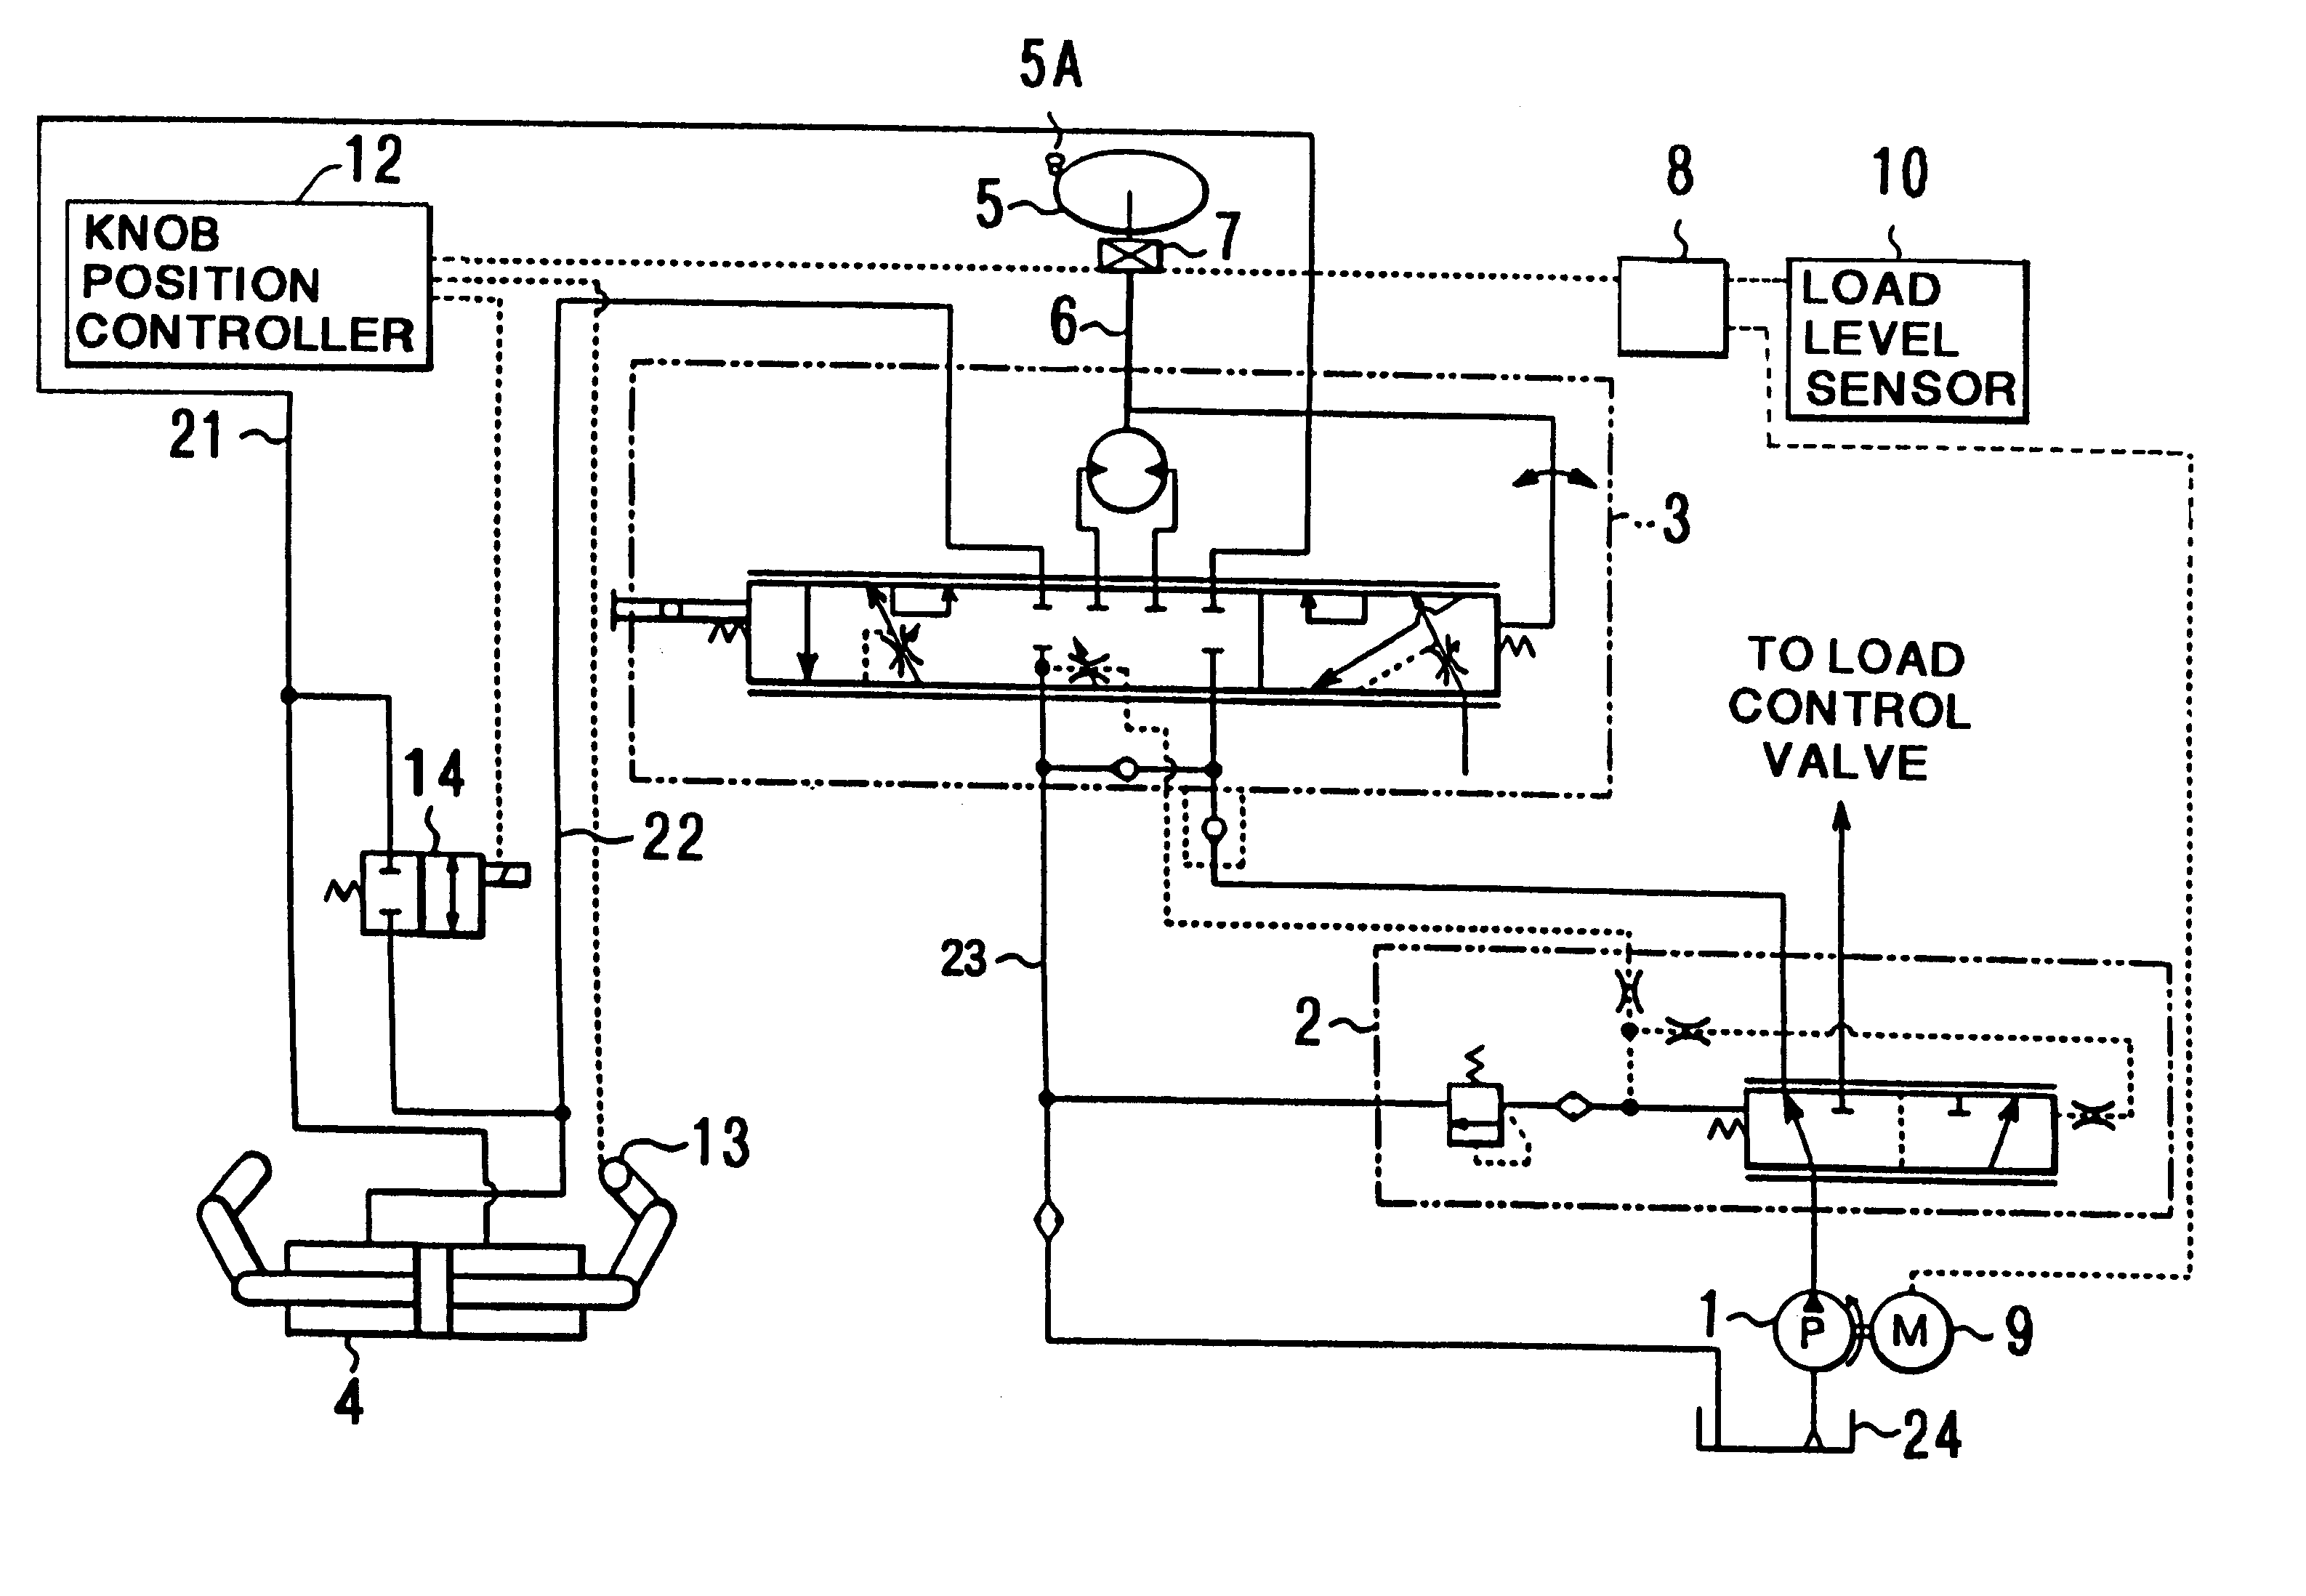 patent us6202410 - hydraulic system for forklift